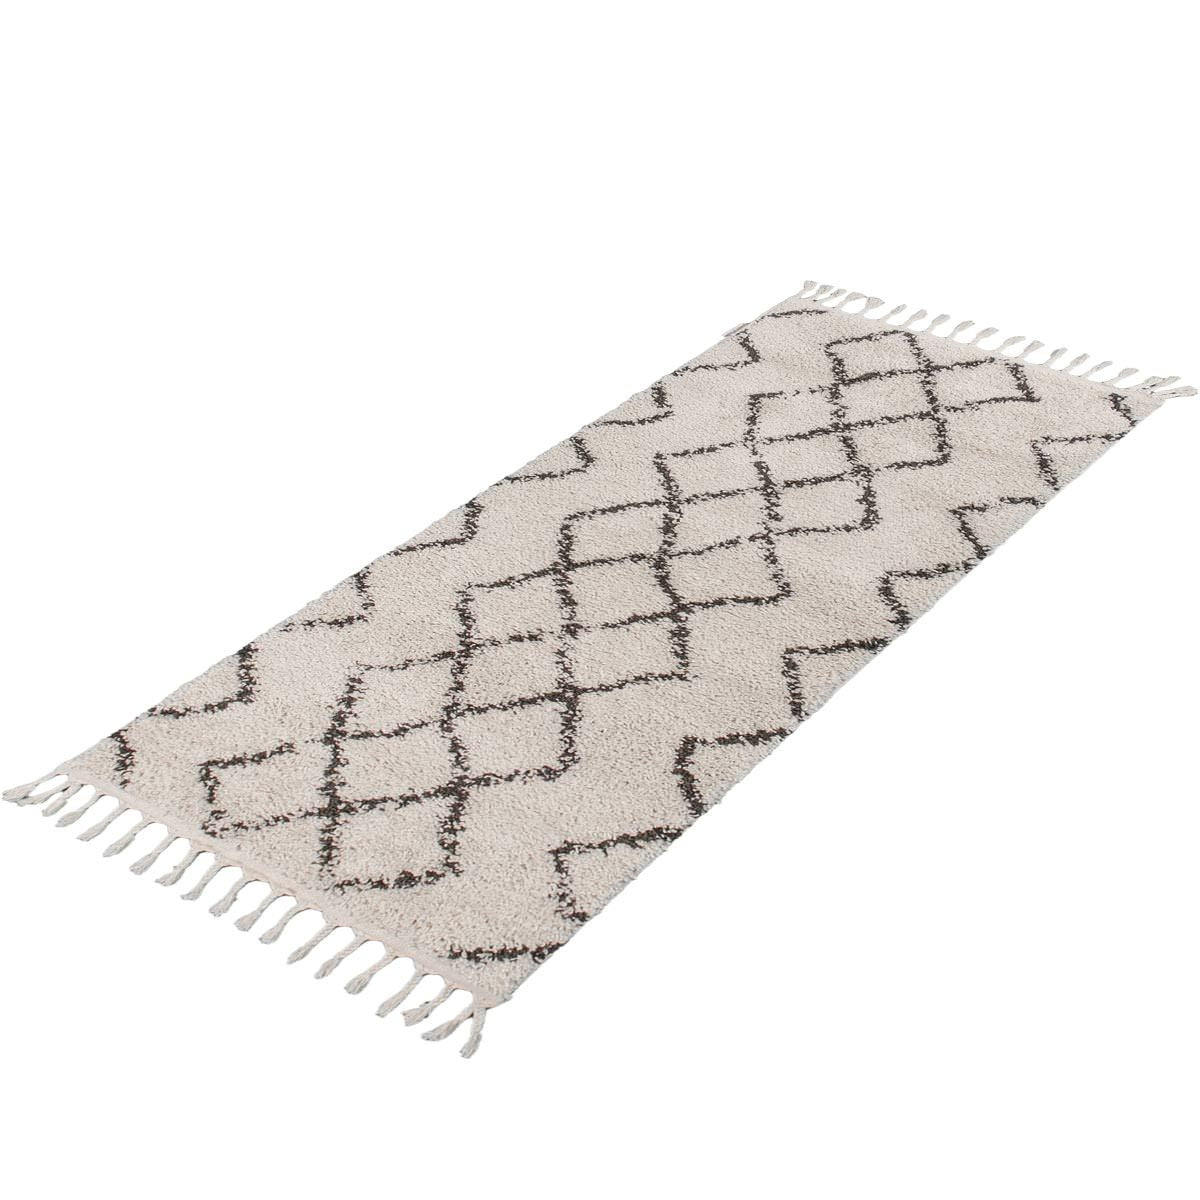 Shaggy Marrakech Rug 03 Cream/Black Runner 7